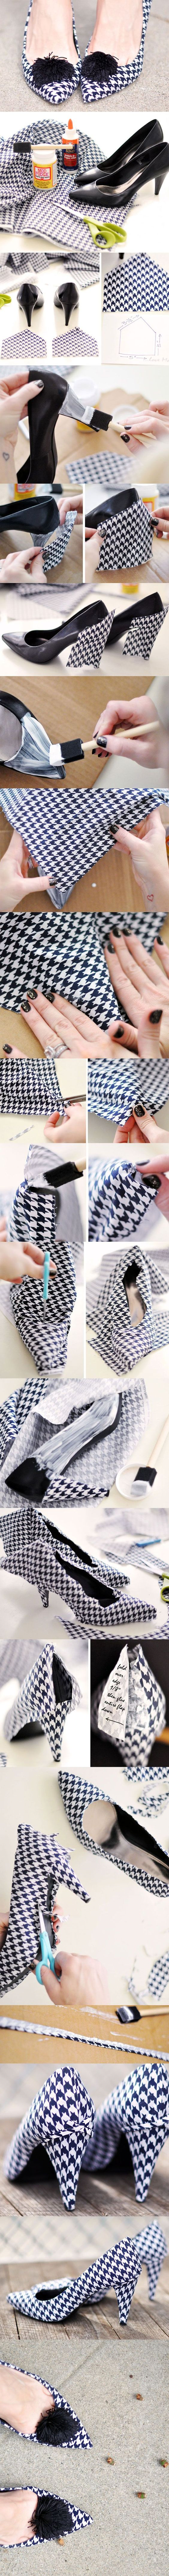 DIY: Designer Shoes Project  OMG!  I love this idea!: